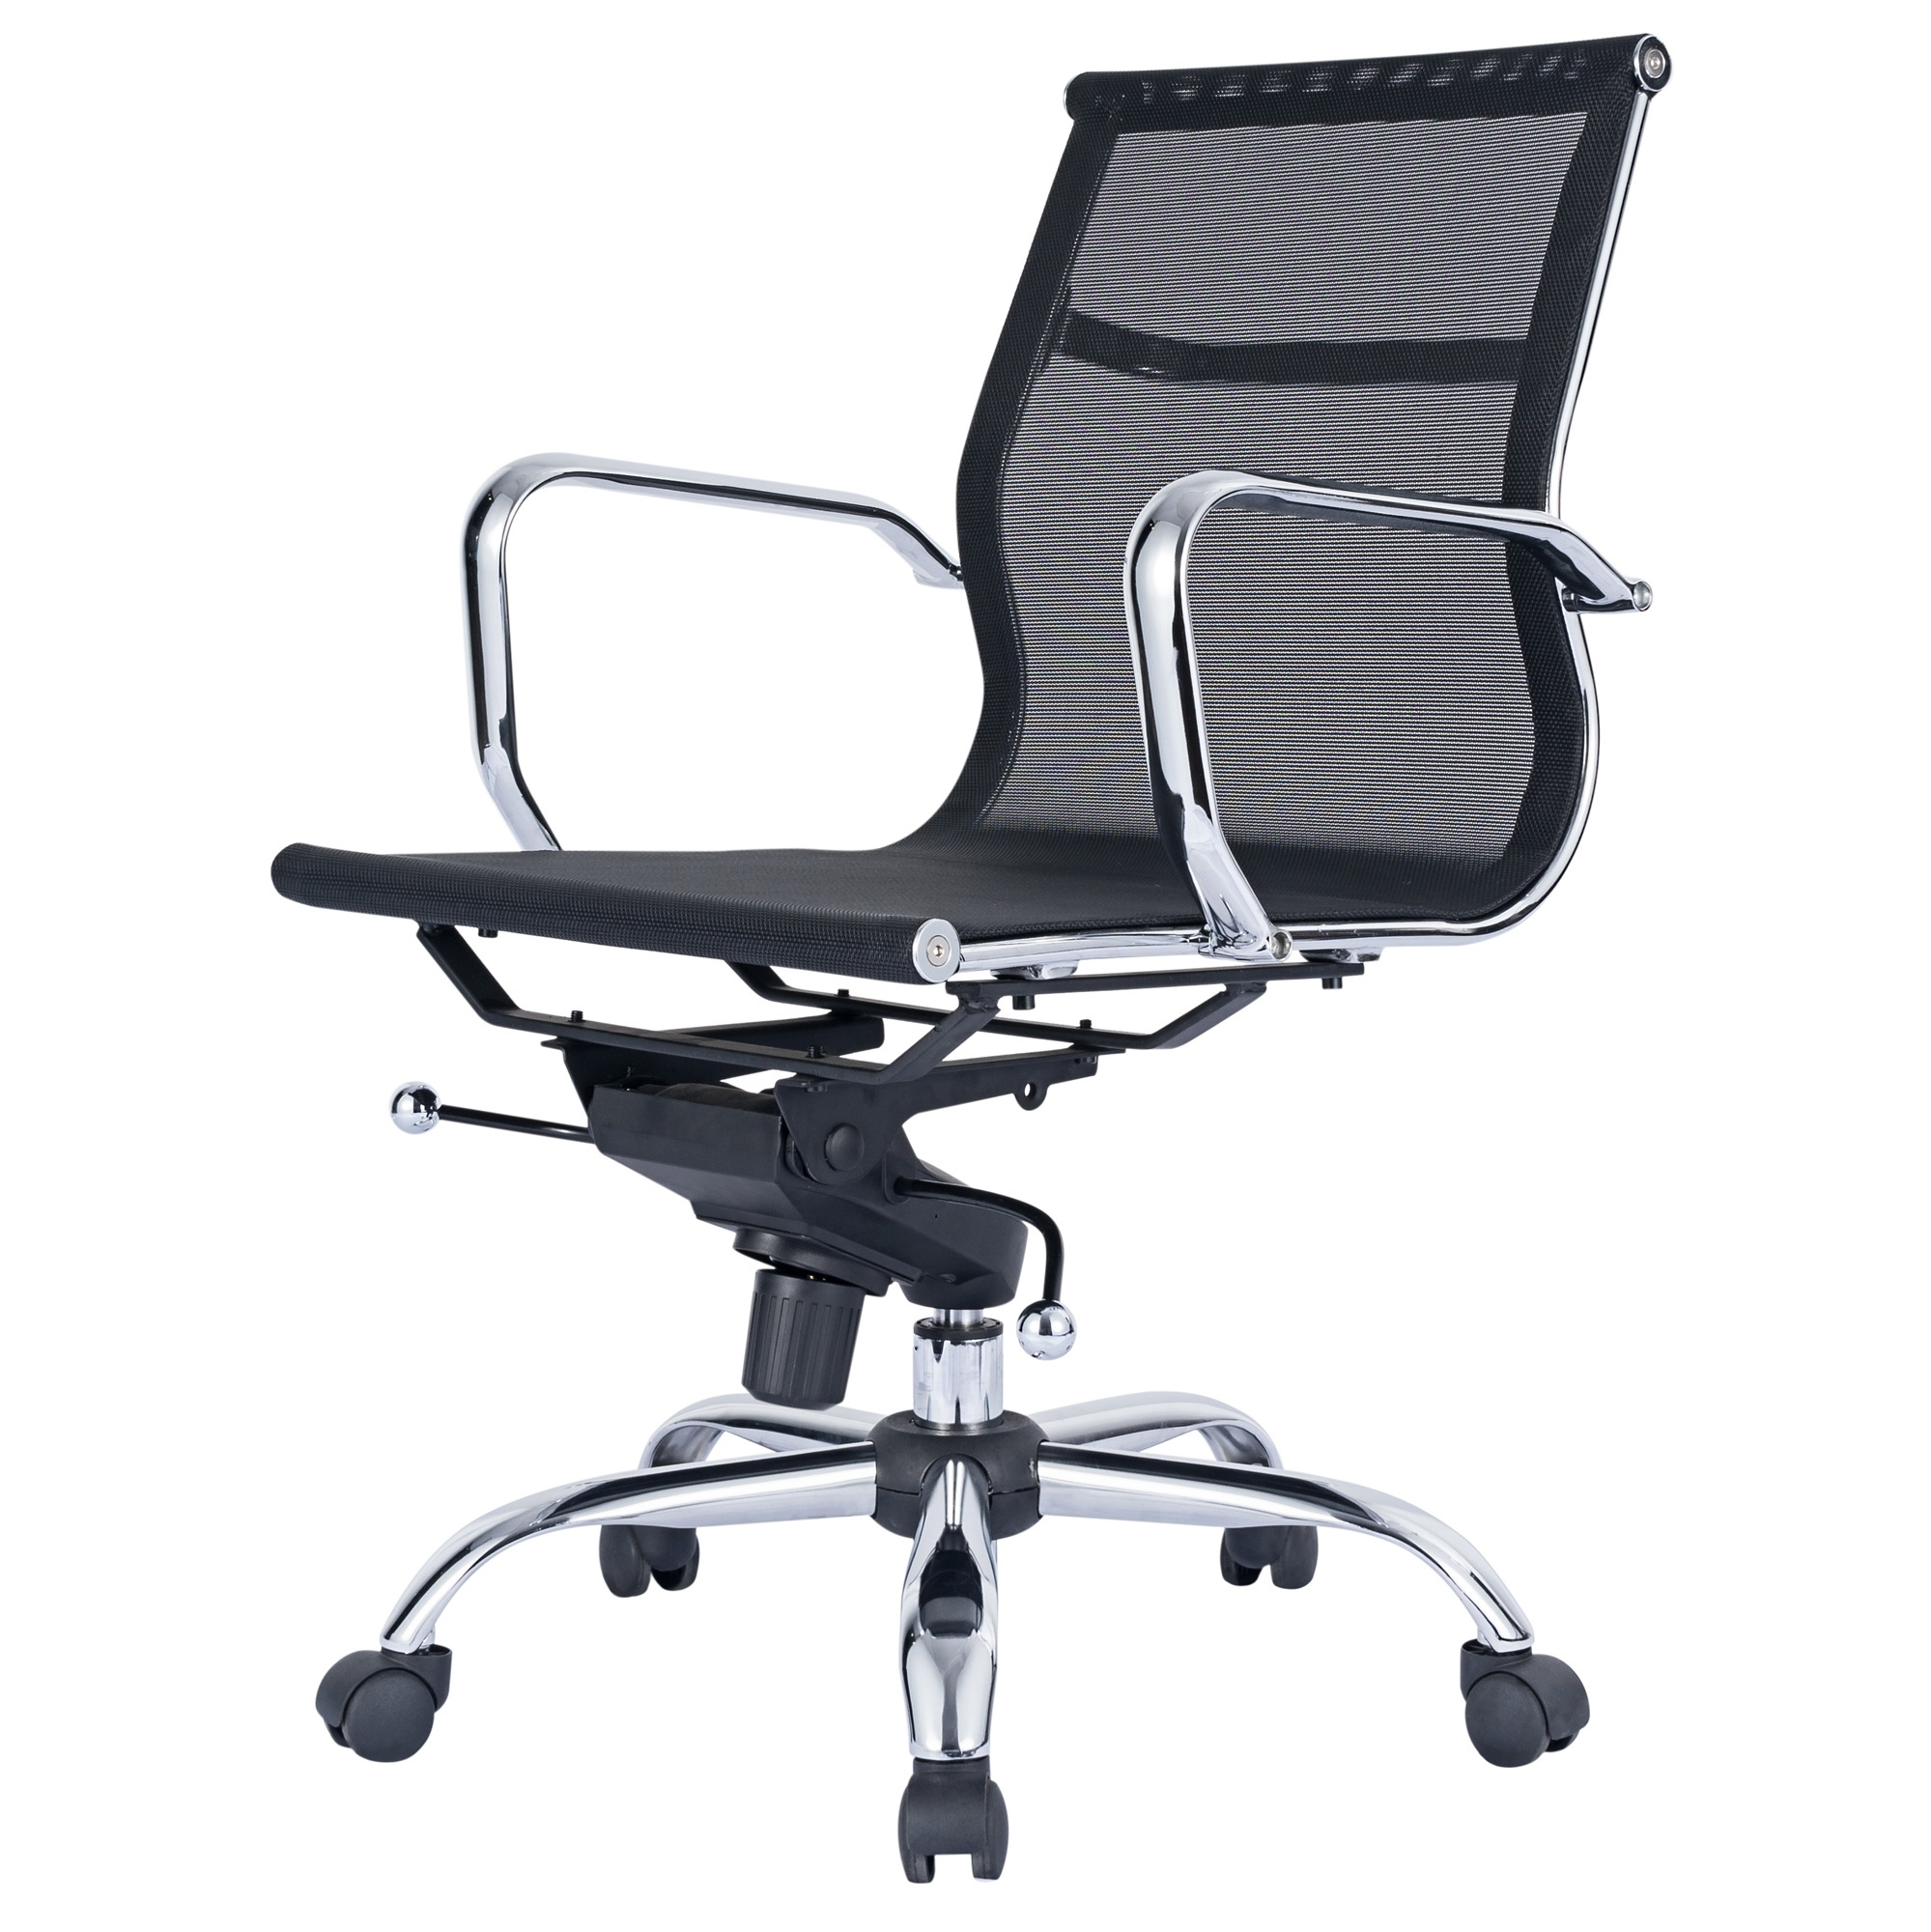 Popular Furniture : Office Chairs Without Arms Office Chair Back Buy Within Executive Office Chairs Without Arms (View 16 of 20)